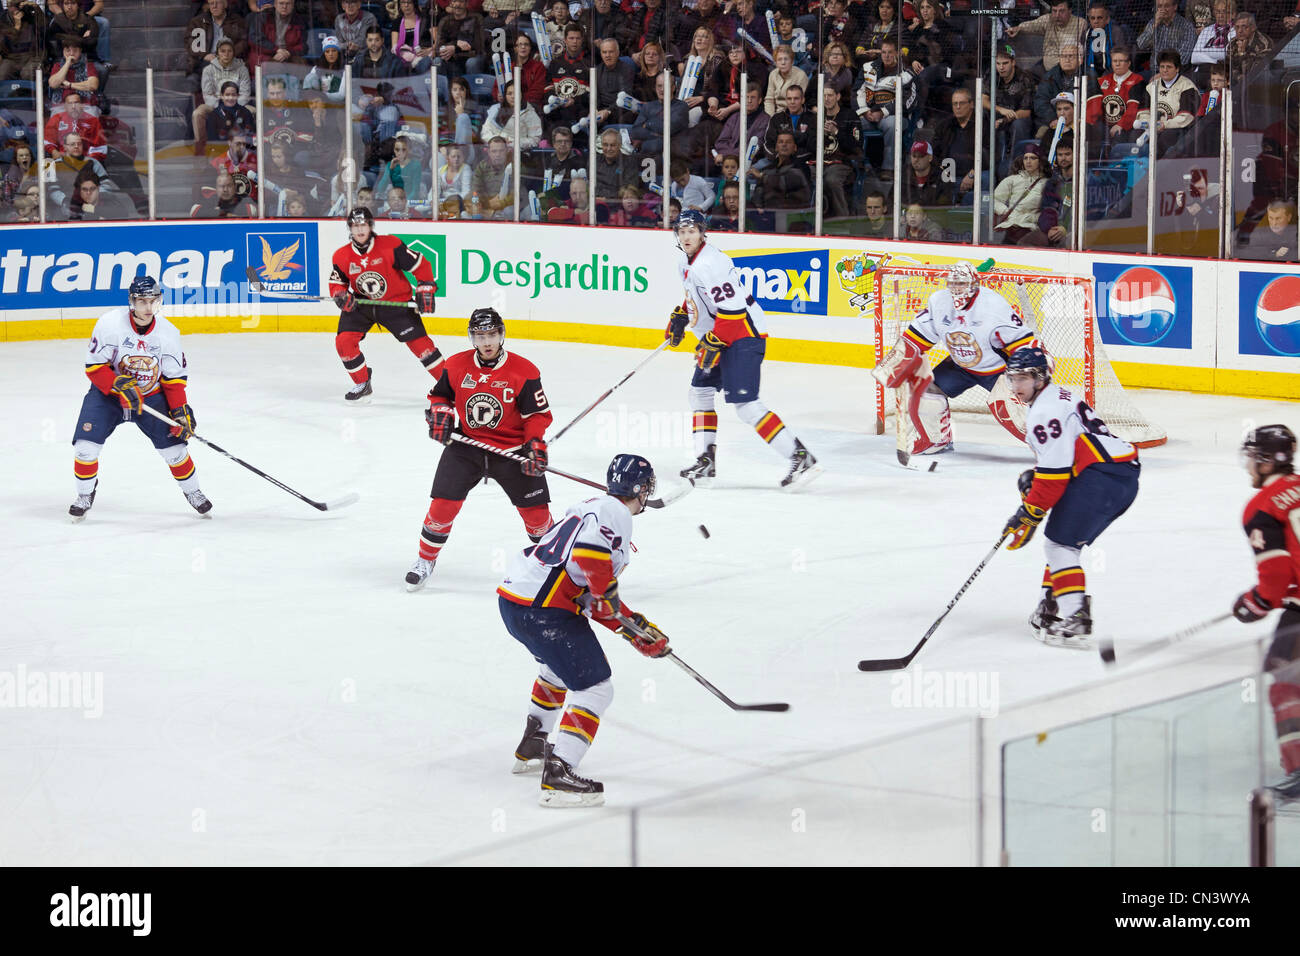 Canada, Quebec province, Quebec, the arena of the Coliseum sports complex, ice hockey team Quebec Remparts game - Stock Image